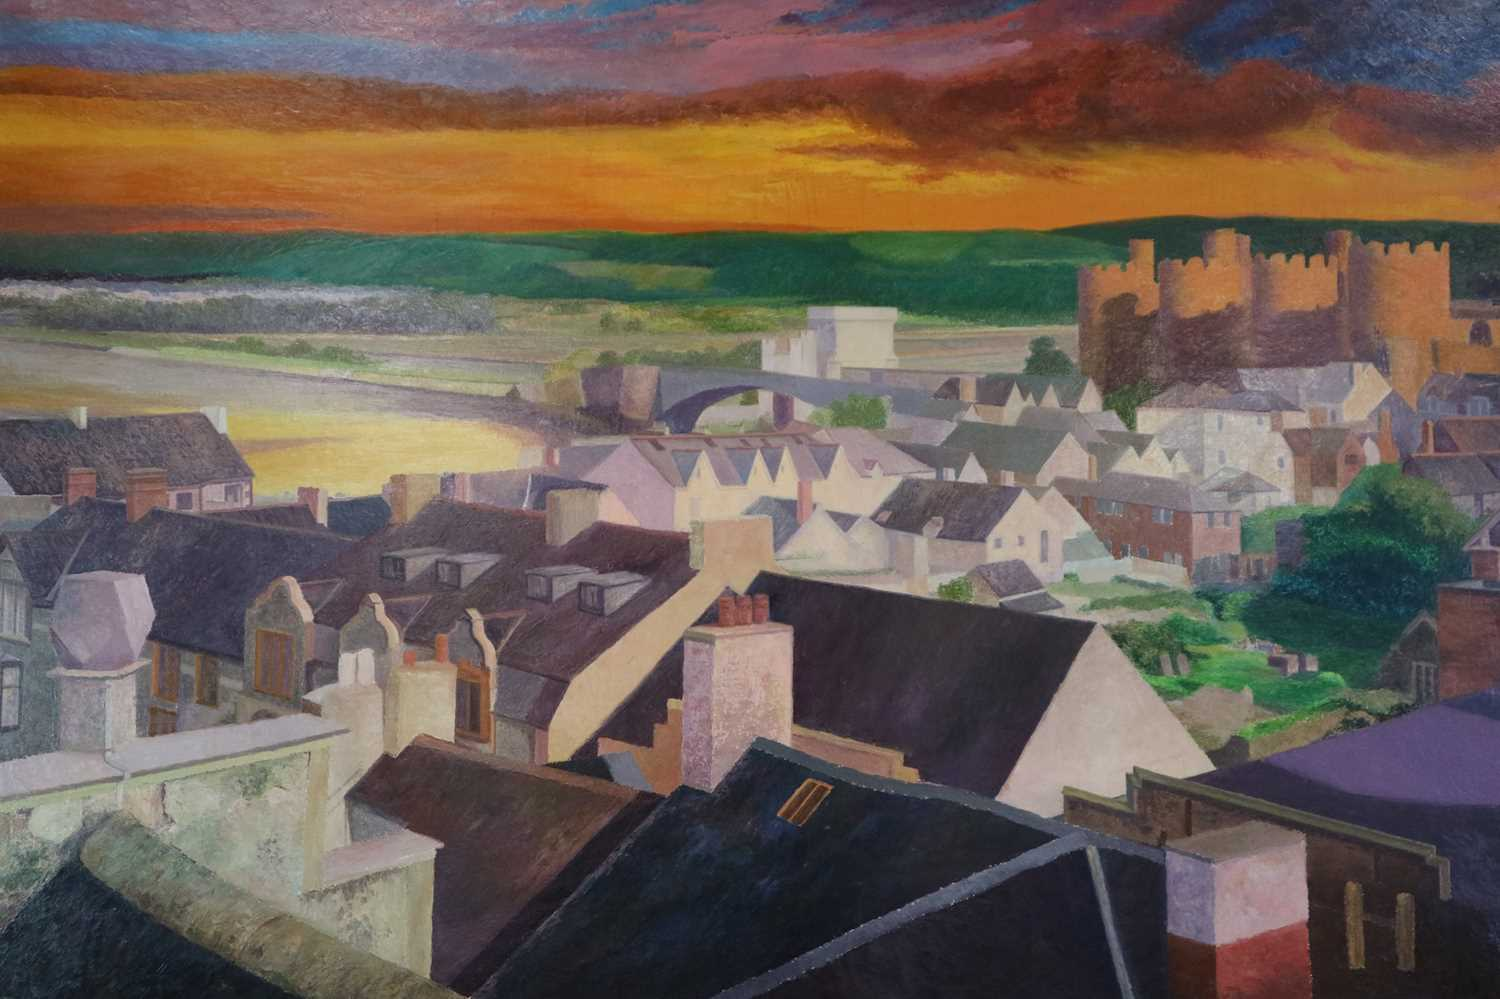 Denby Sweeting (1936-2020) Conwy Castle at Sunset from Across the Rooftops